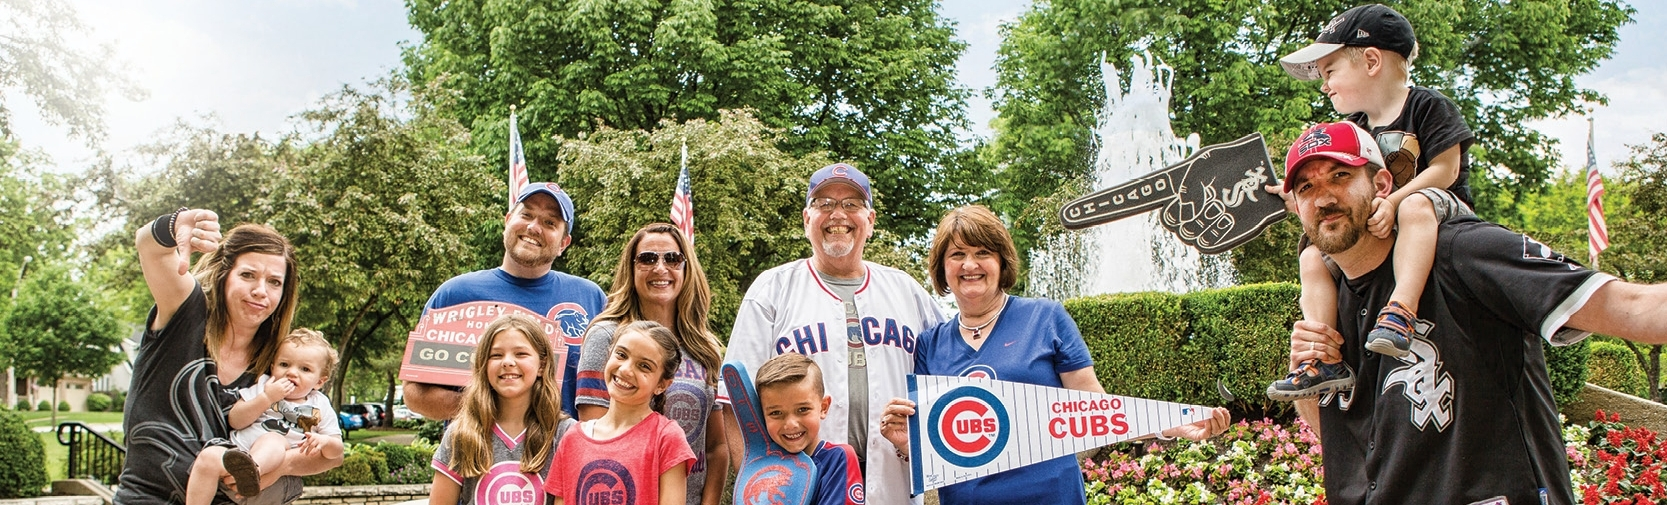 Meet Cubs and White Sox superfans: The Stienstra family